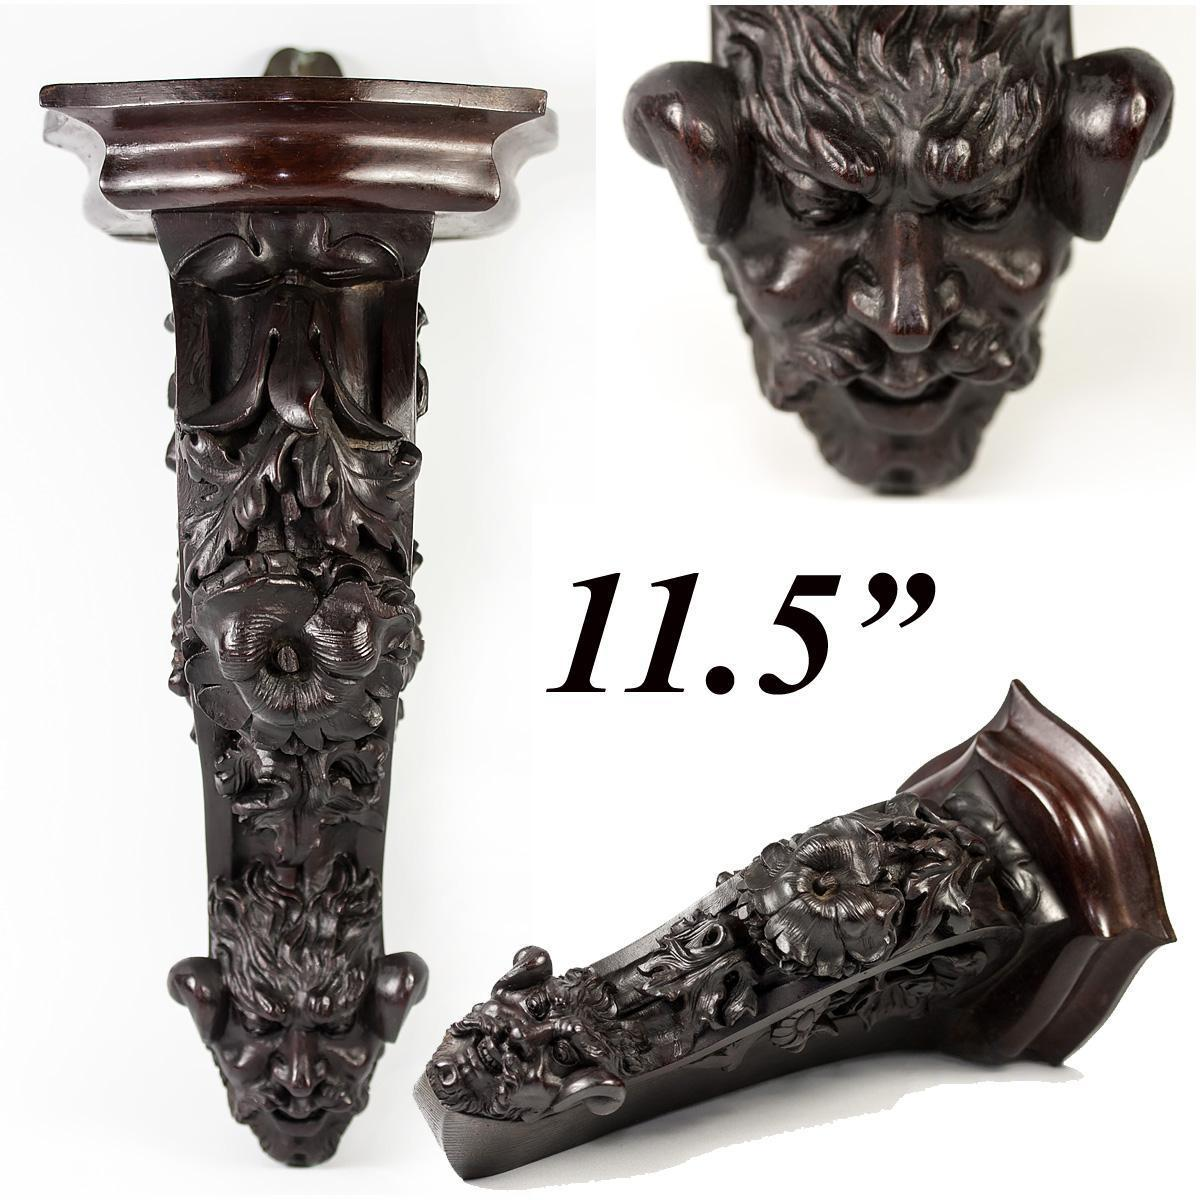 Unique Antique French Hand Carved Wood Figural Corner Bracket Shelf, Adapted